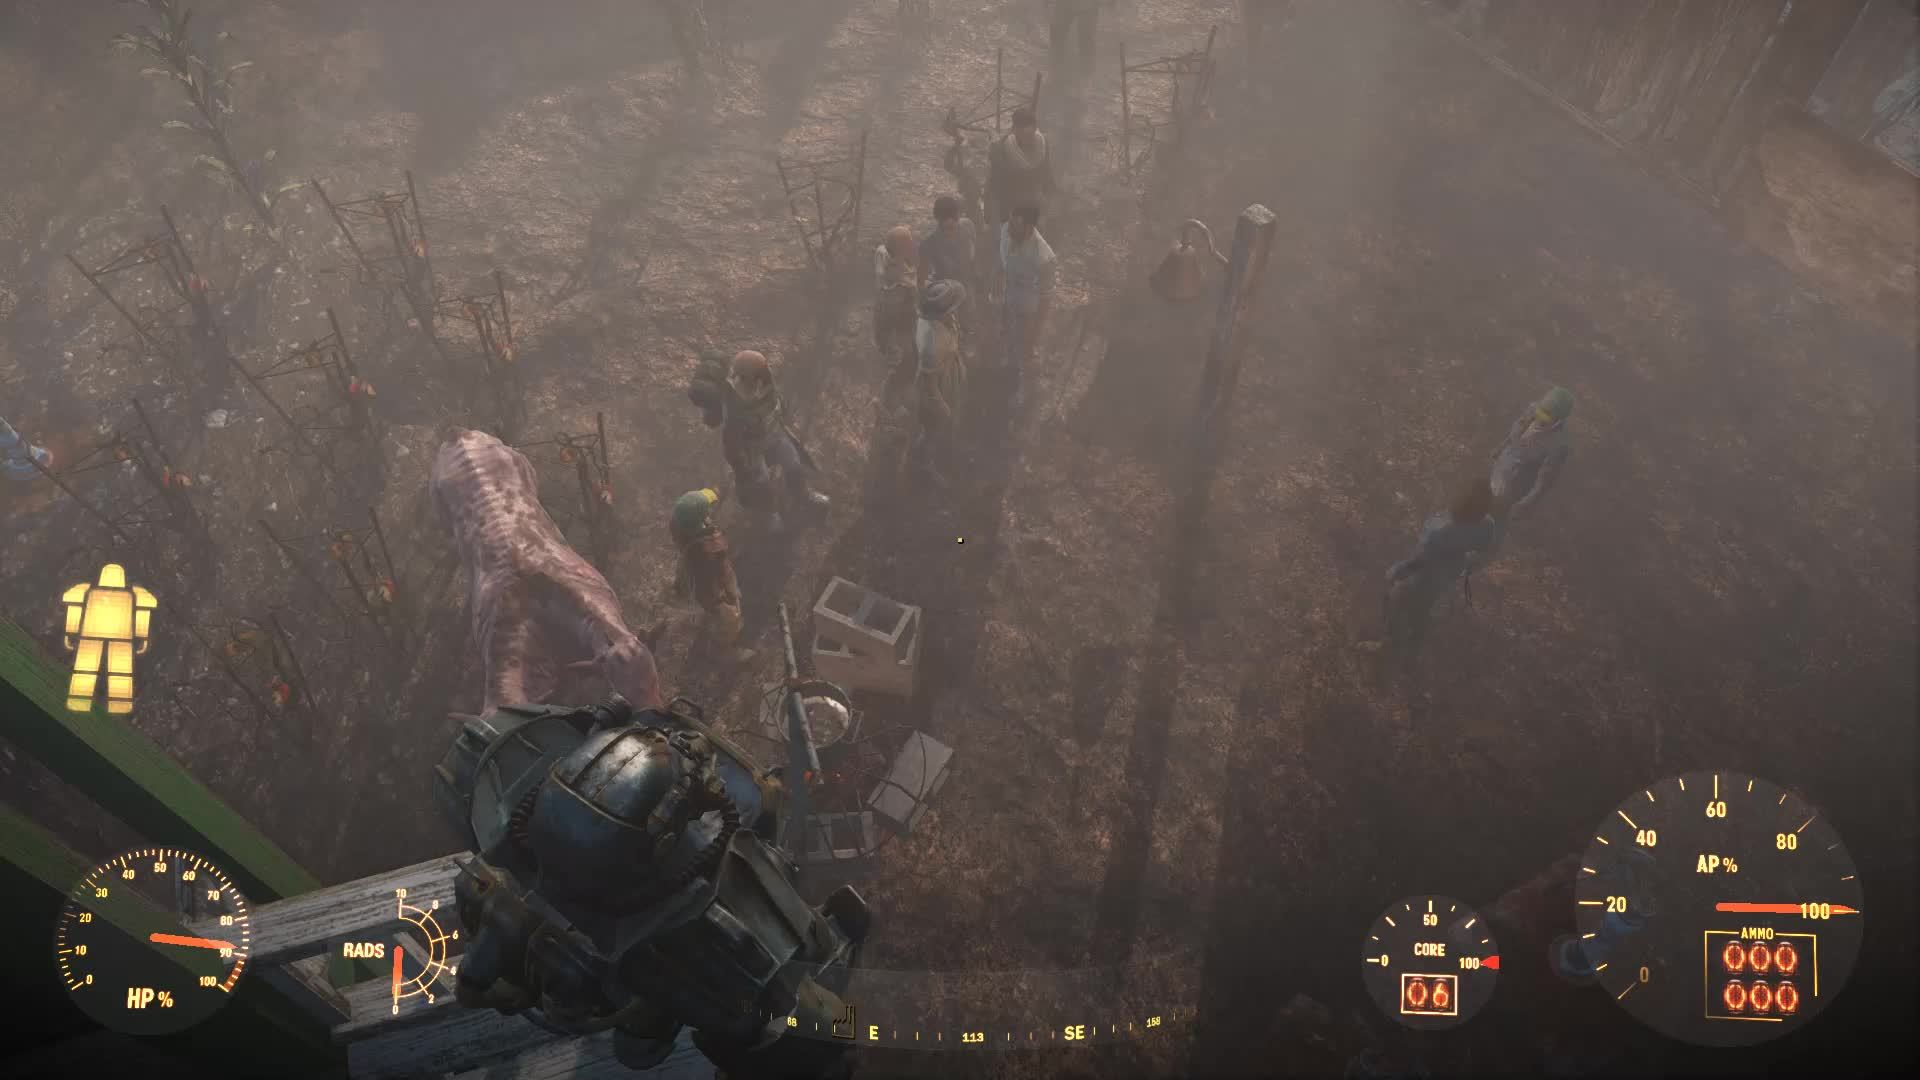 60fpsgifs, accidentalcomedy, randomactsofgaming, Fall out in Fallout GIFs